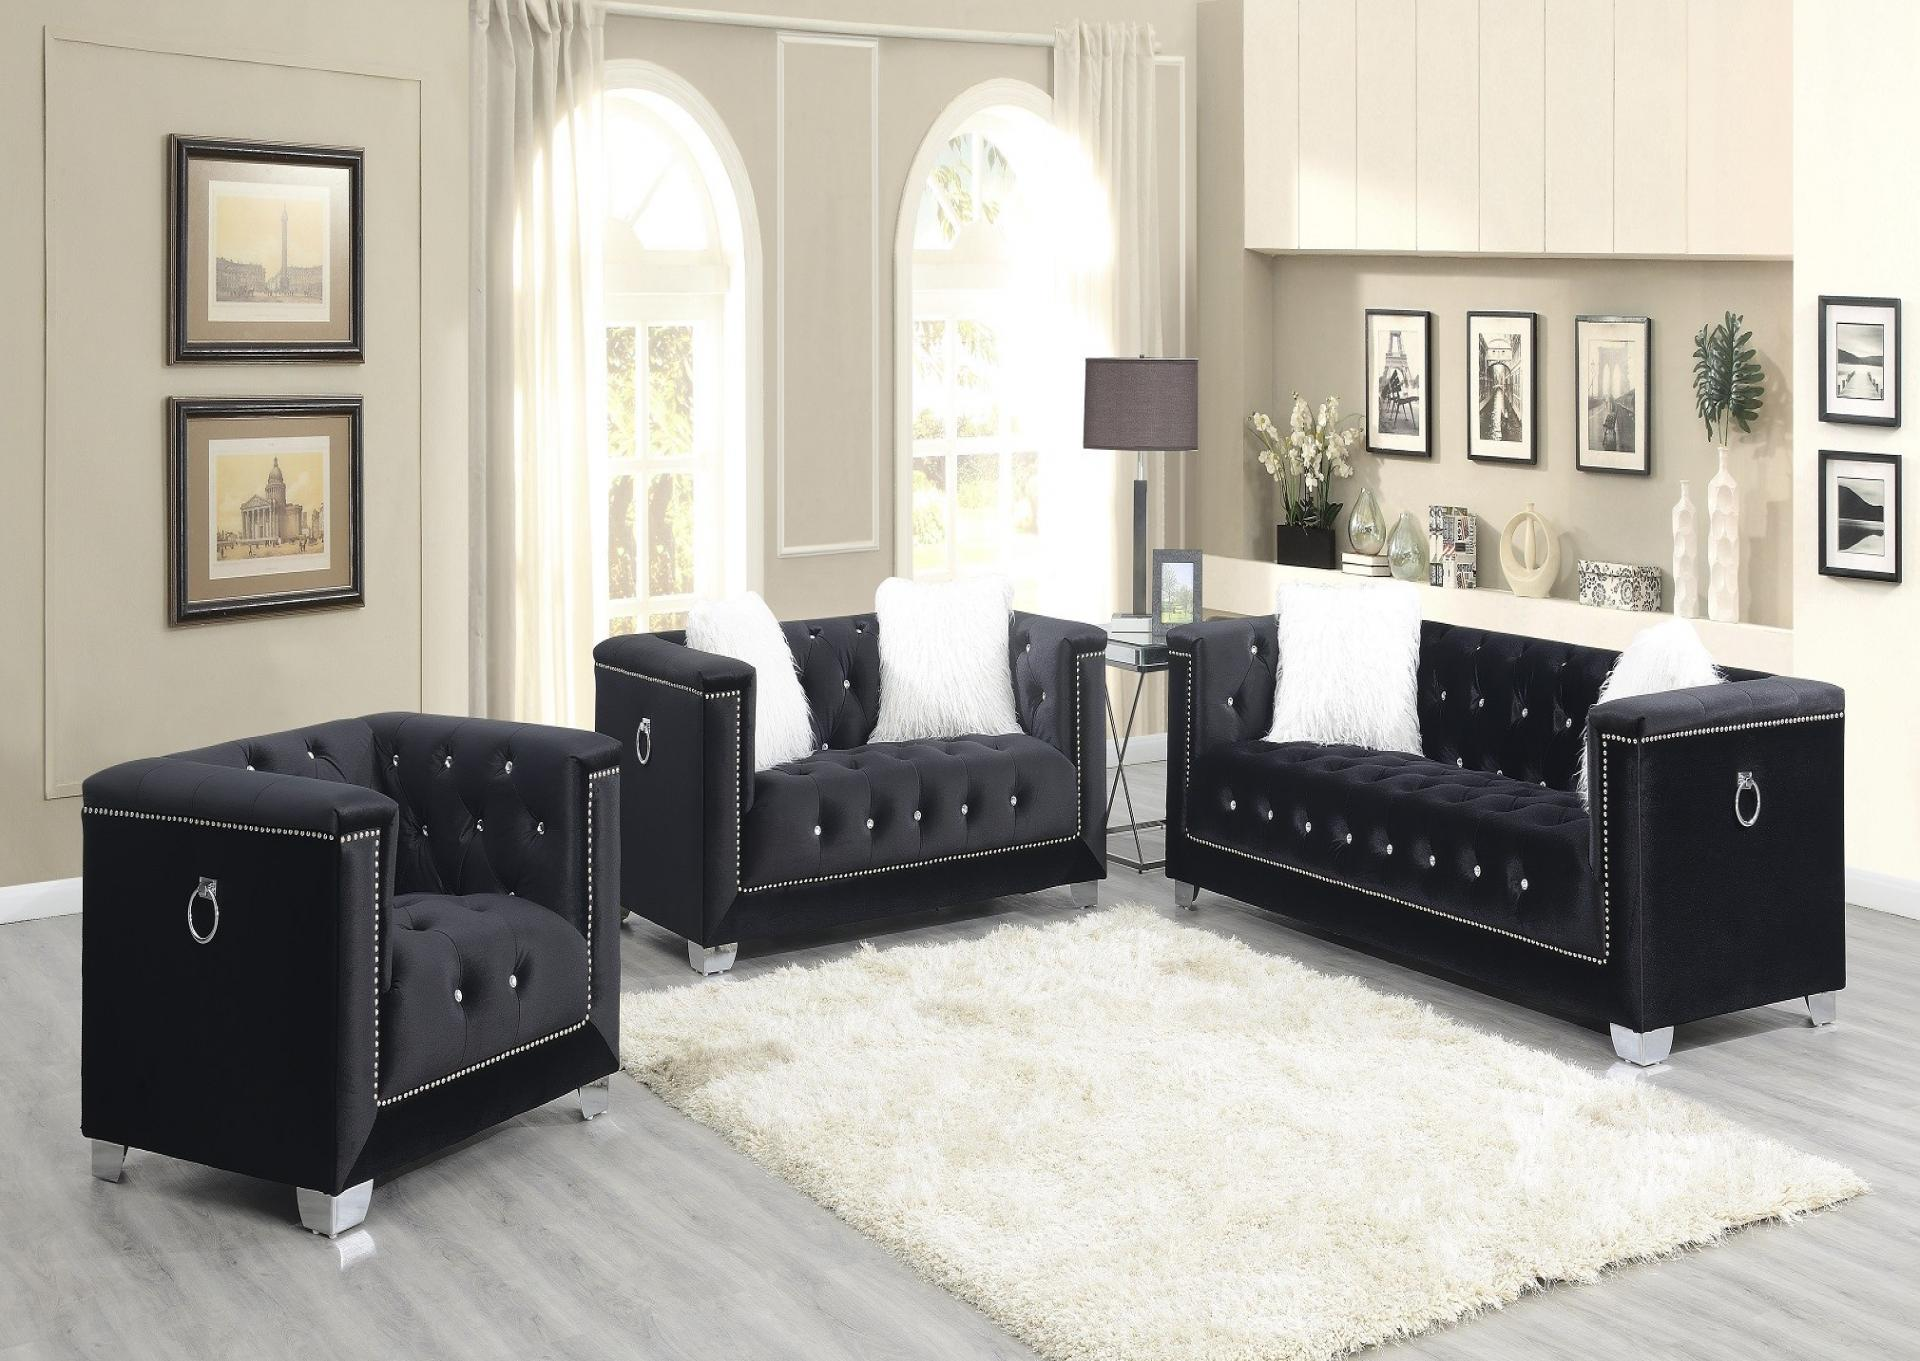 PRINCESS BLACK - SOFA & LOVESEAT,Jerusalem Furniture